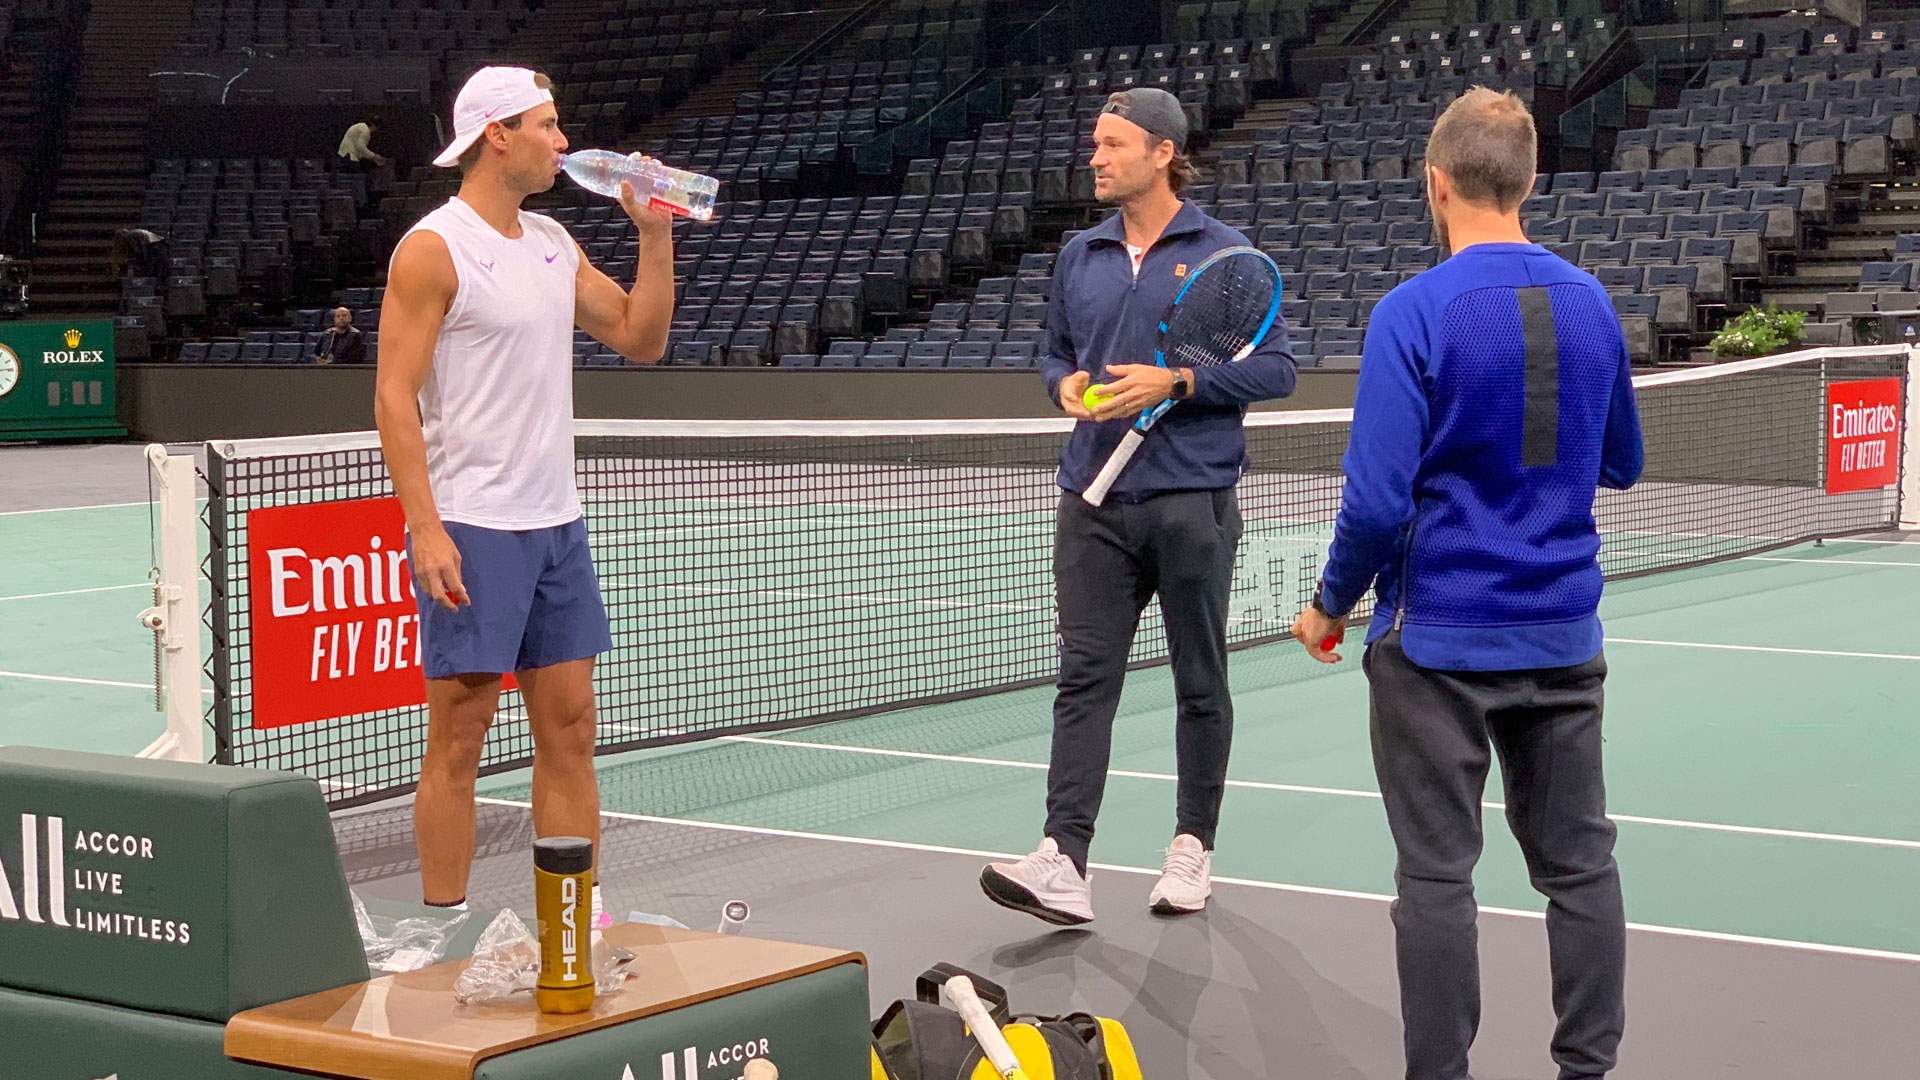 Rafael Nadal takes a break from practice alongside Carlos Moya at the Rolex Paris Masters.